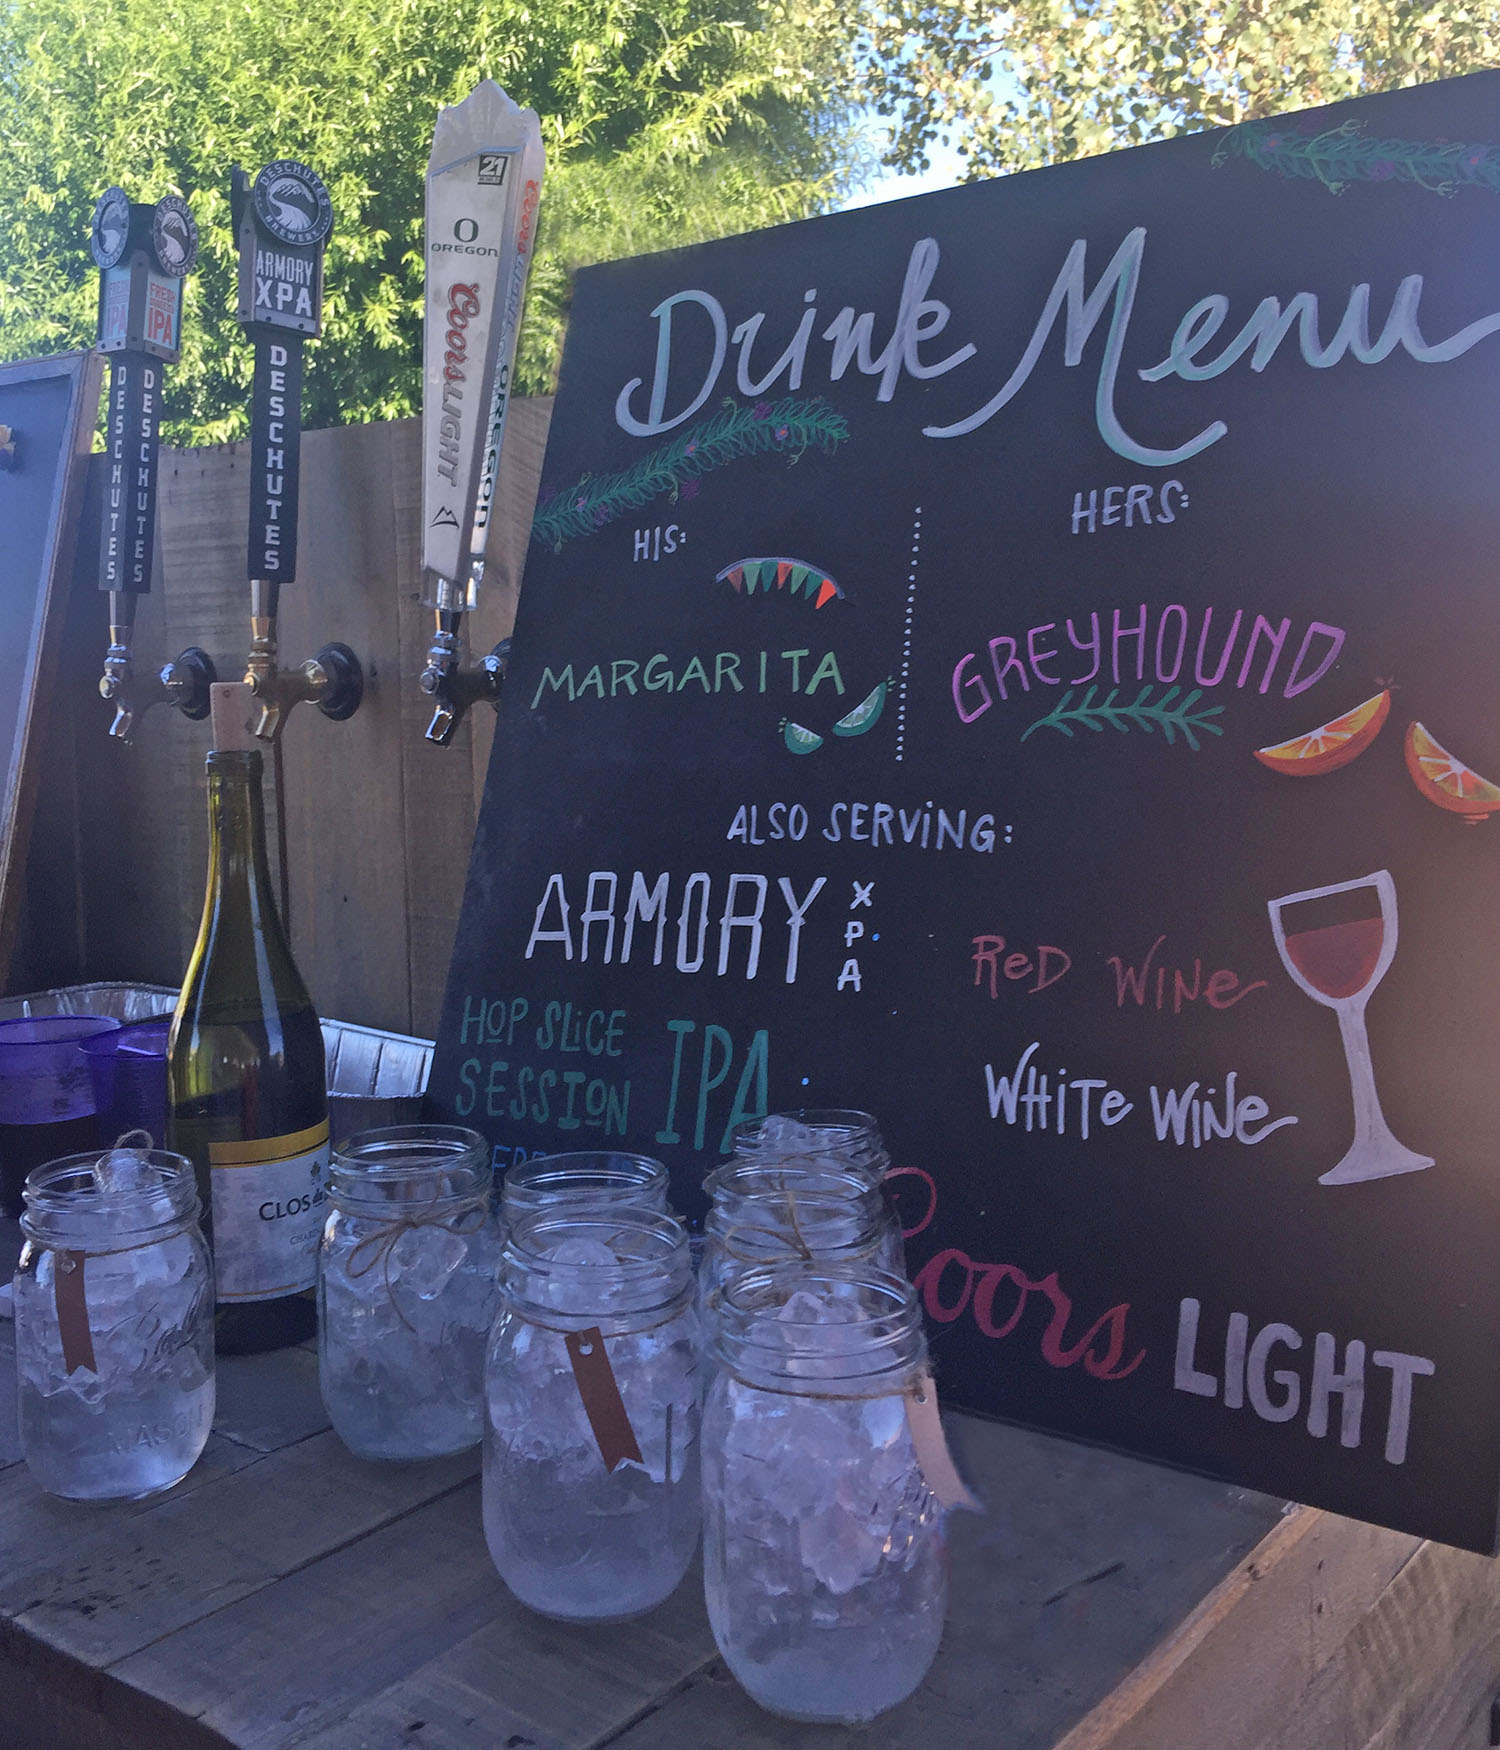 Beer, wine and handcrafted cocktails